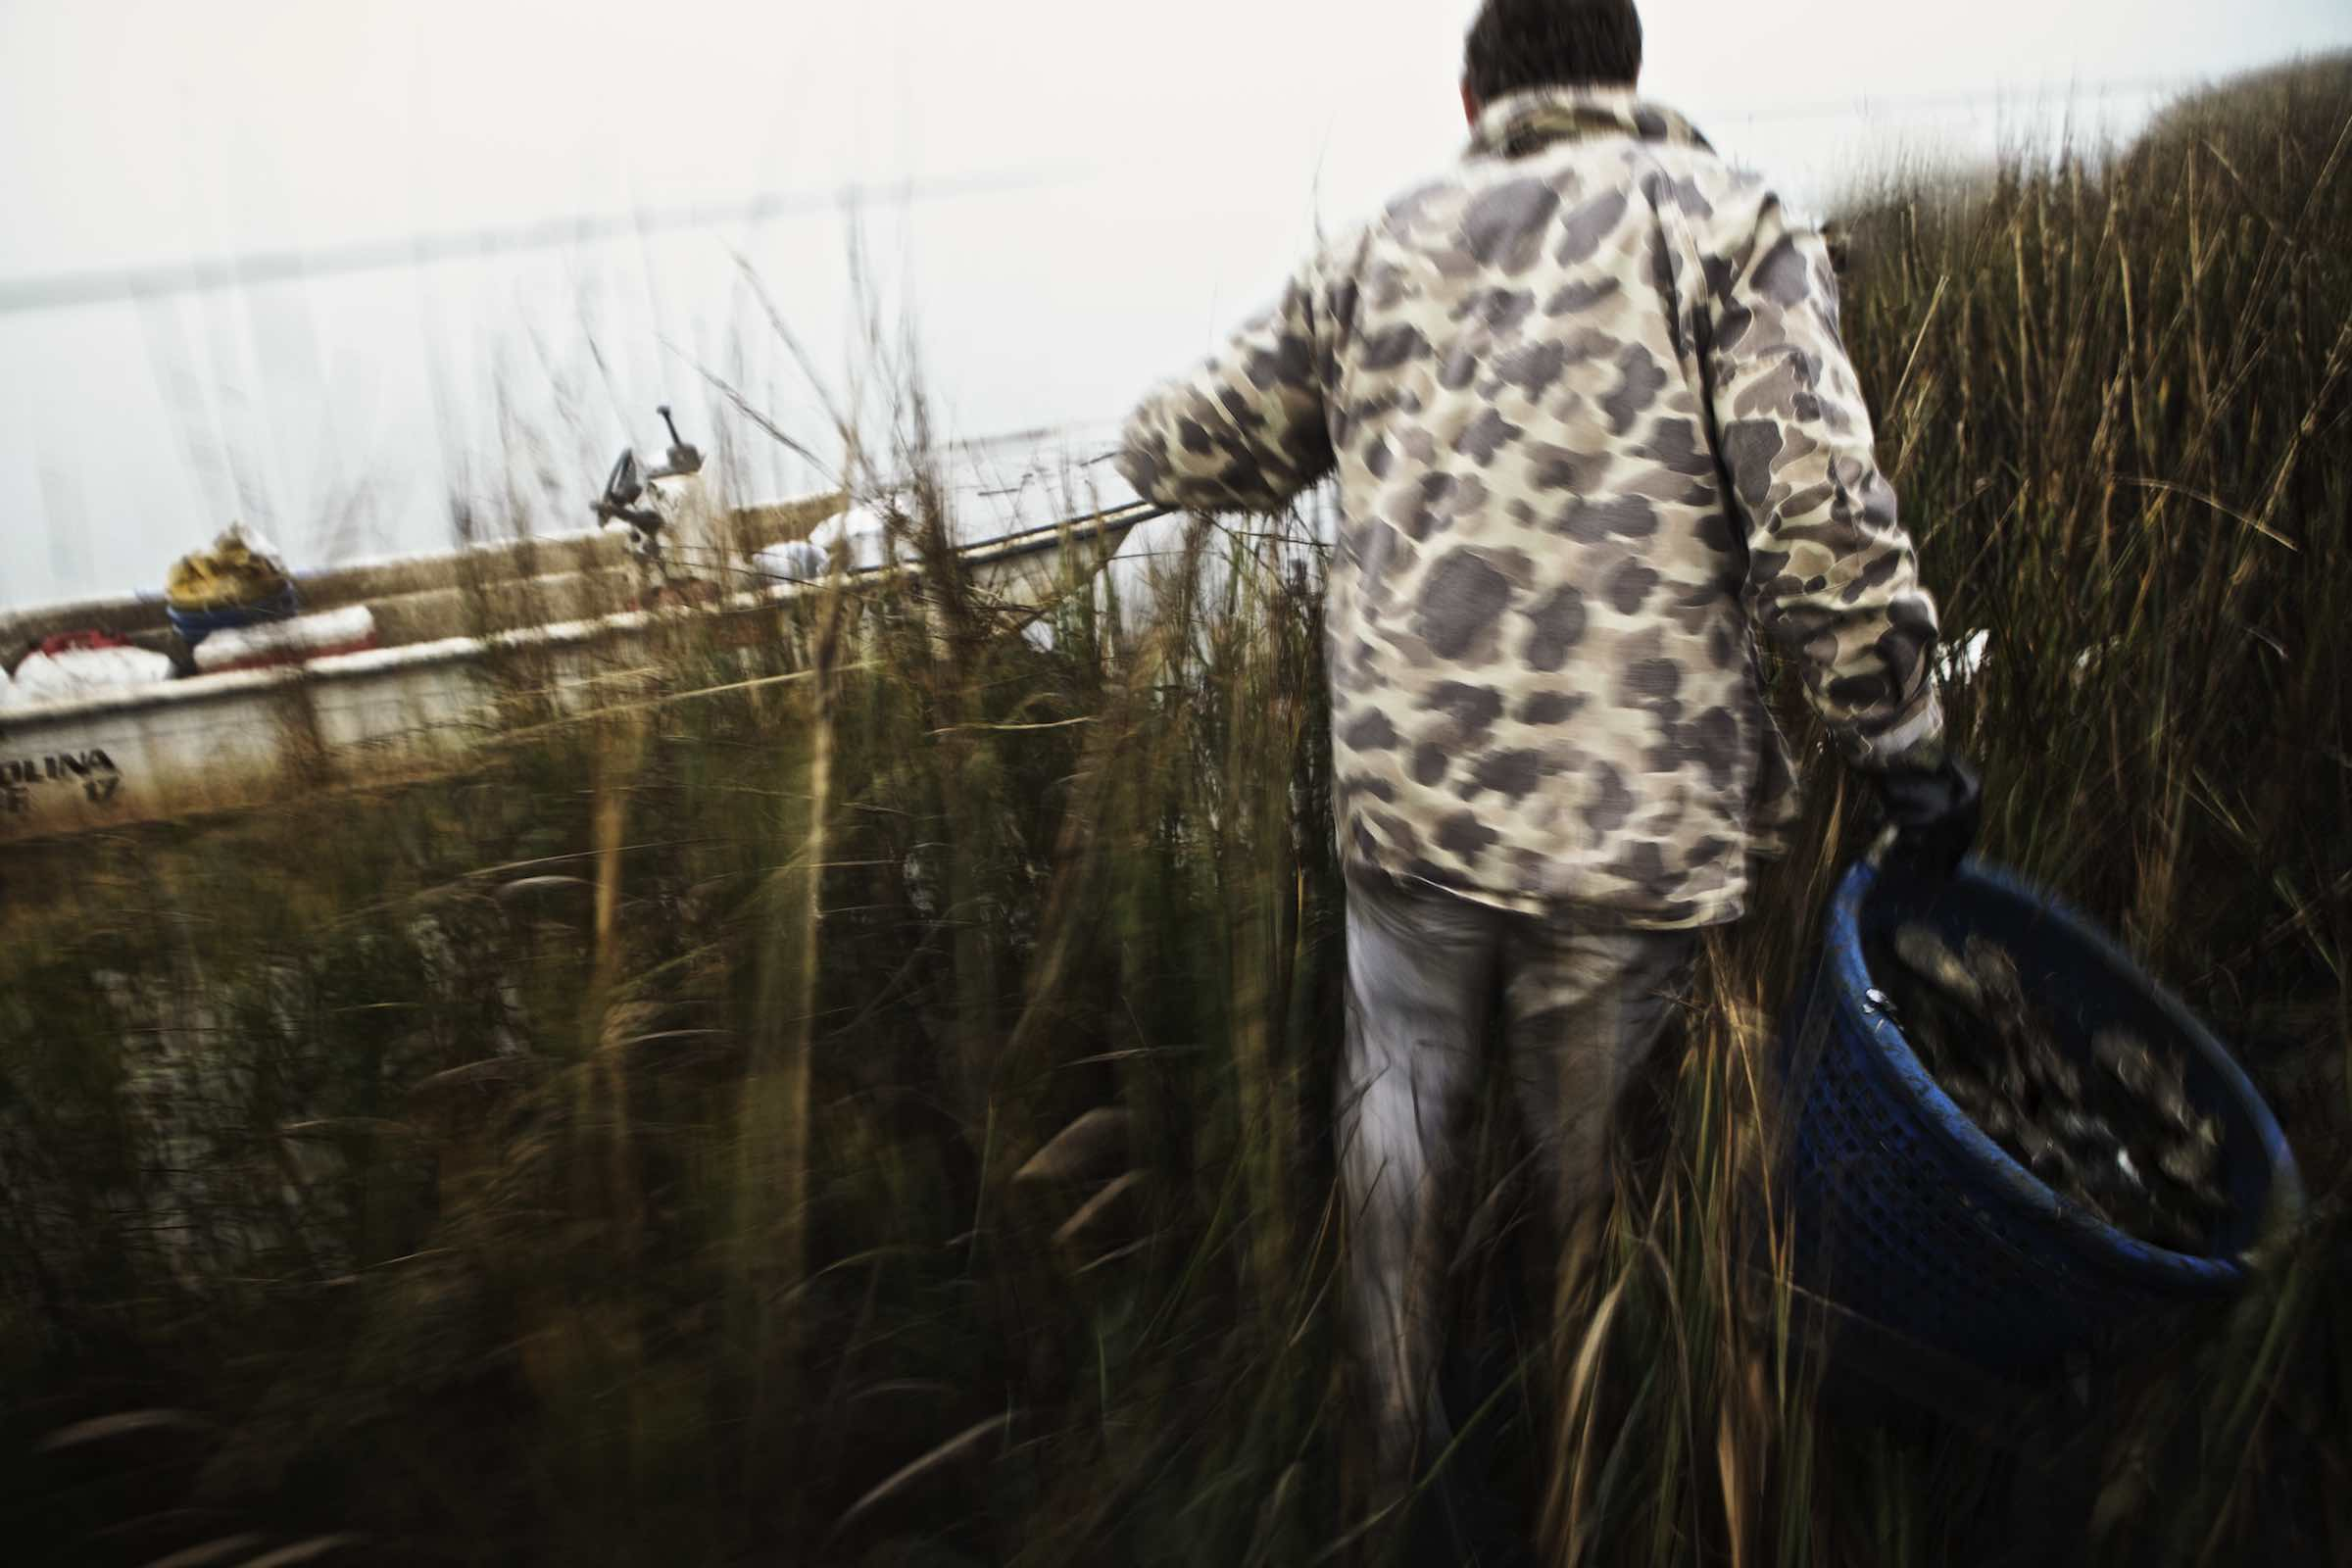 Fisherman carrying oyster haul through tall marsh grasses.